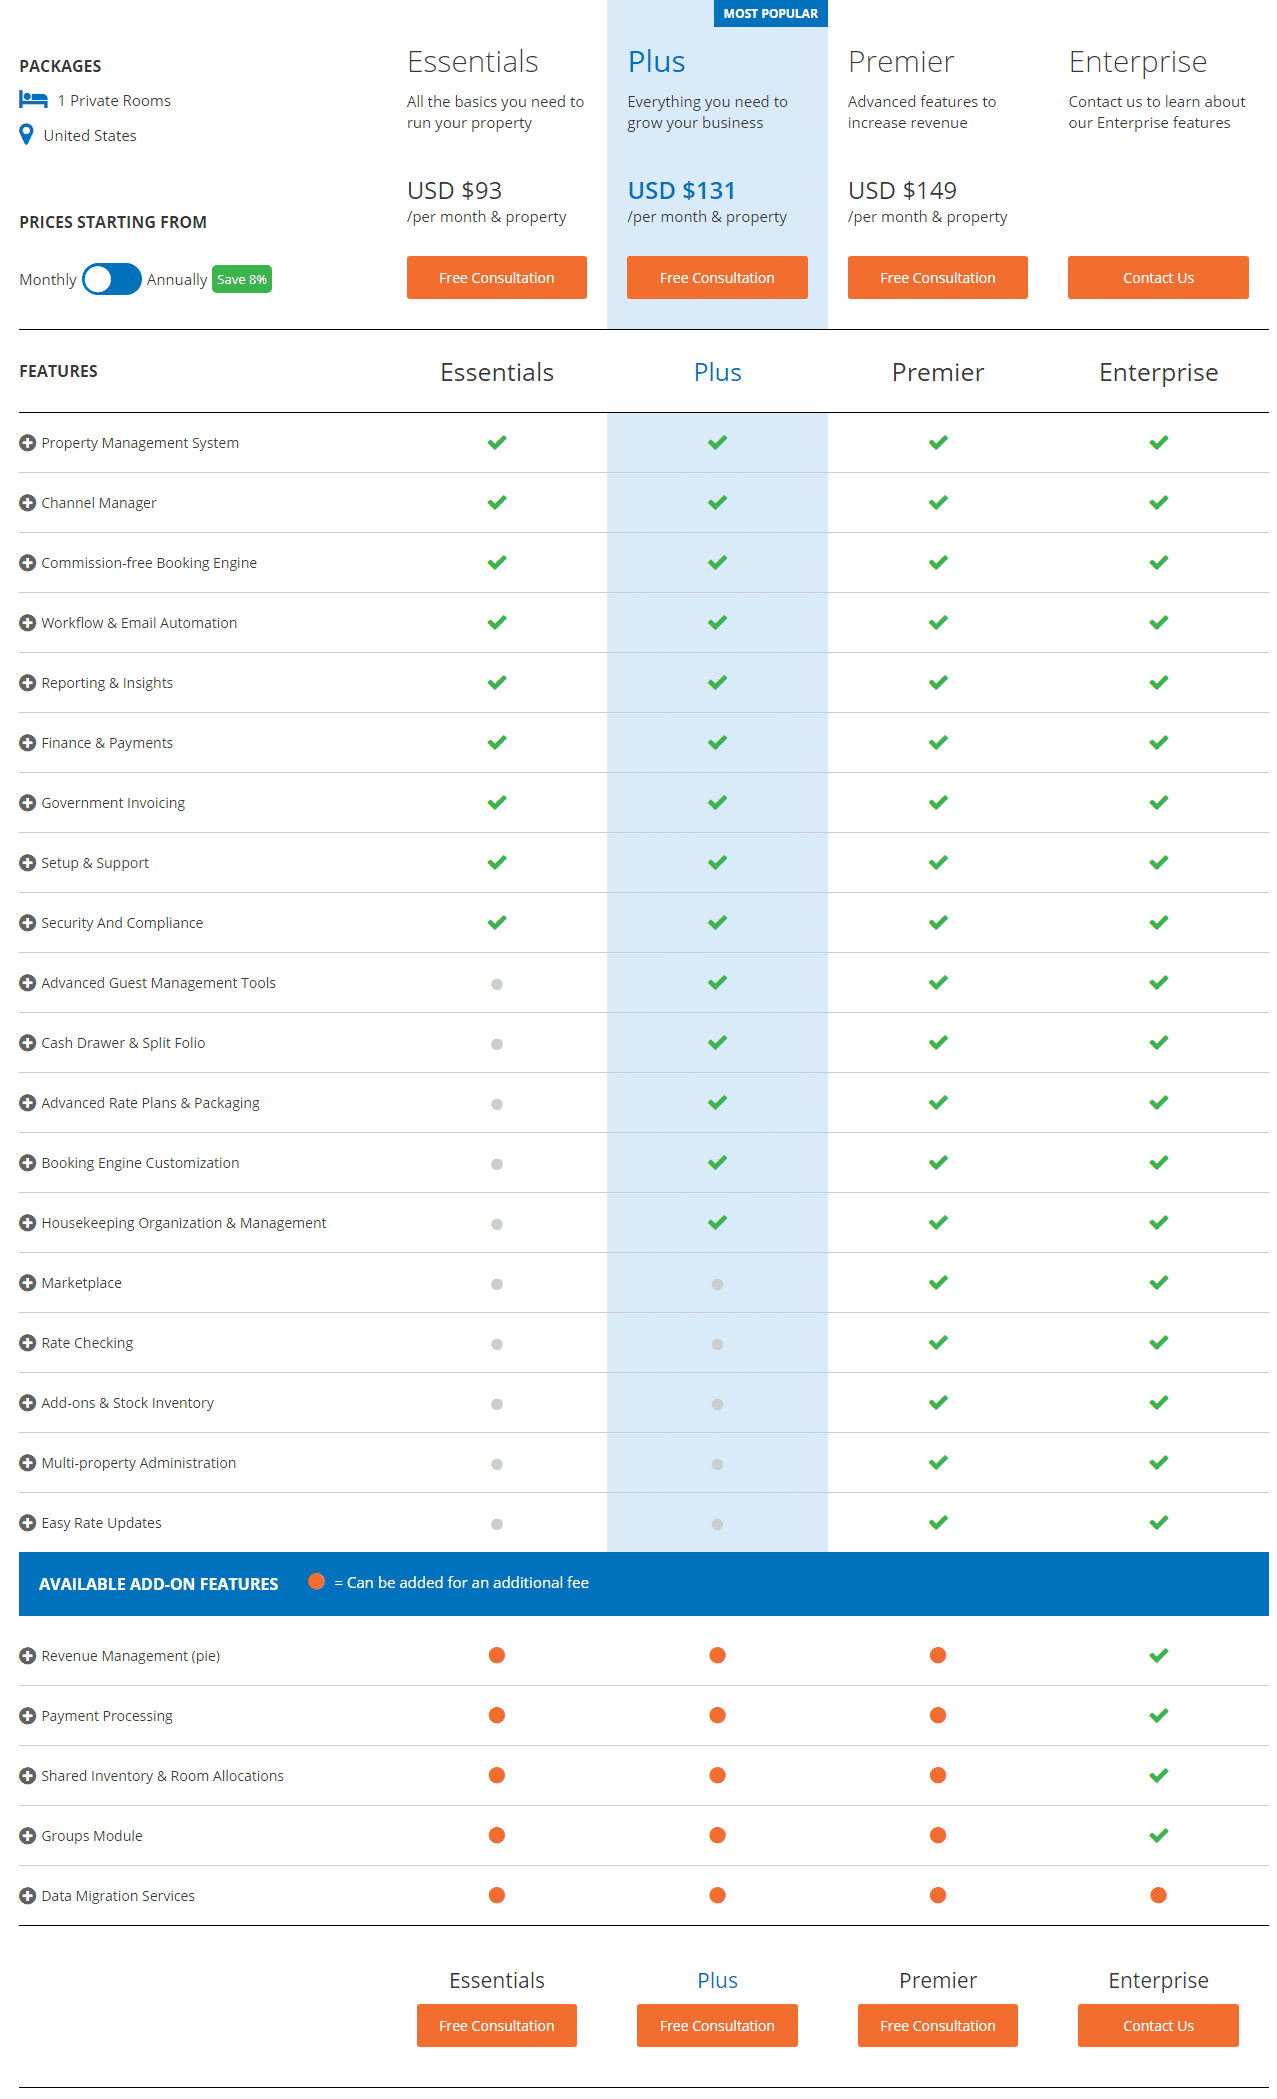 Cloudbeds Pricing